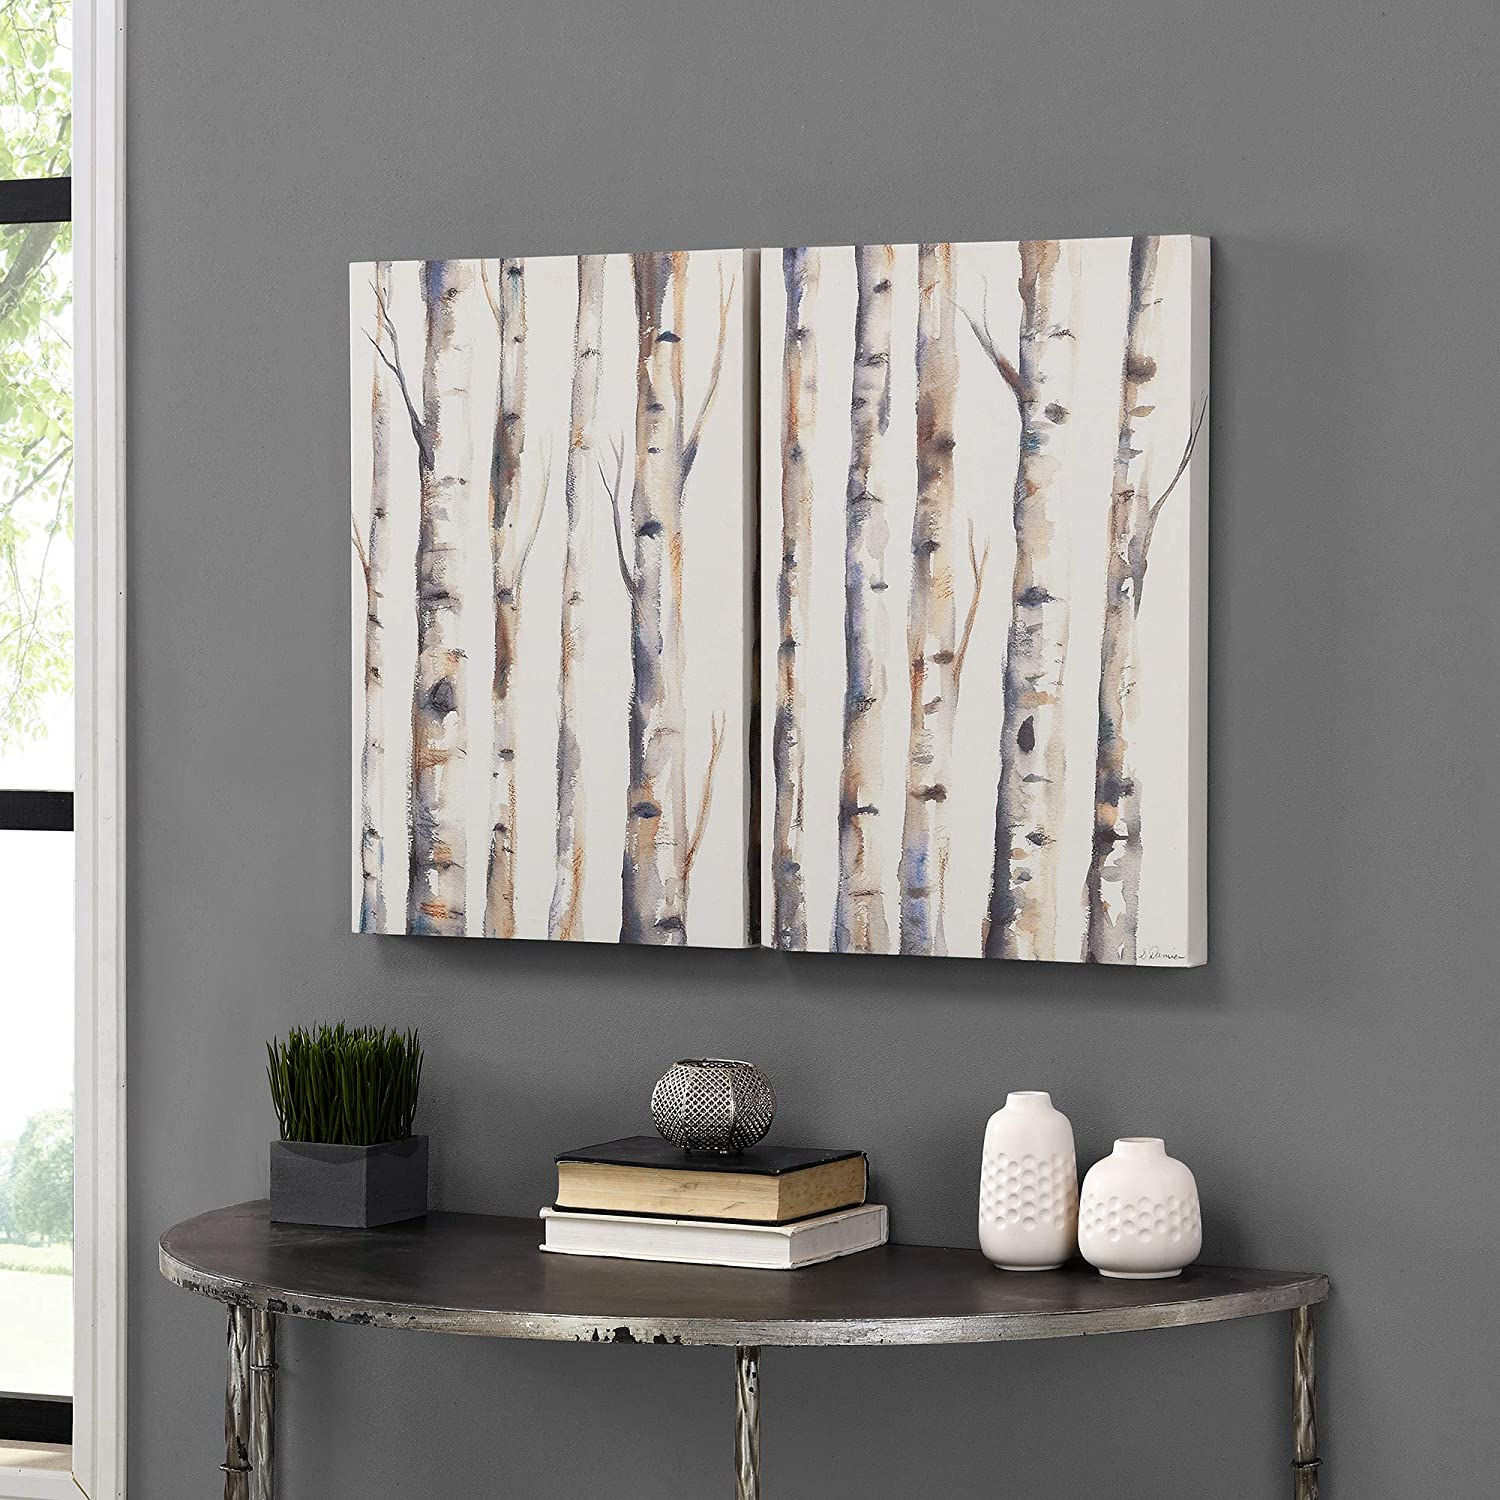 FirsTime & Co. Birch Woodland Canvas 2-Piece Set, American Crafted, Multi-Color Watercolor, 32 x 1.5 x 24 ,